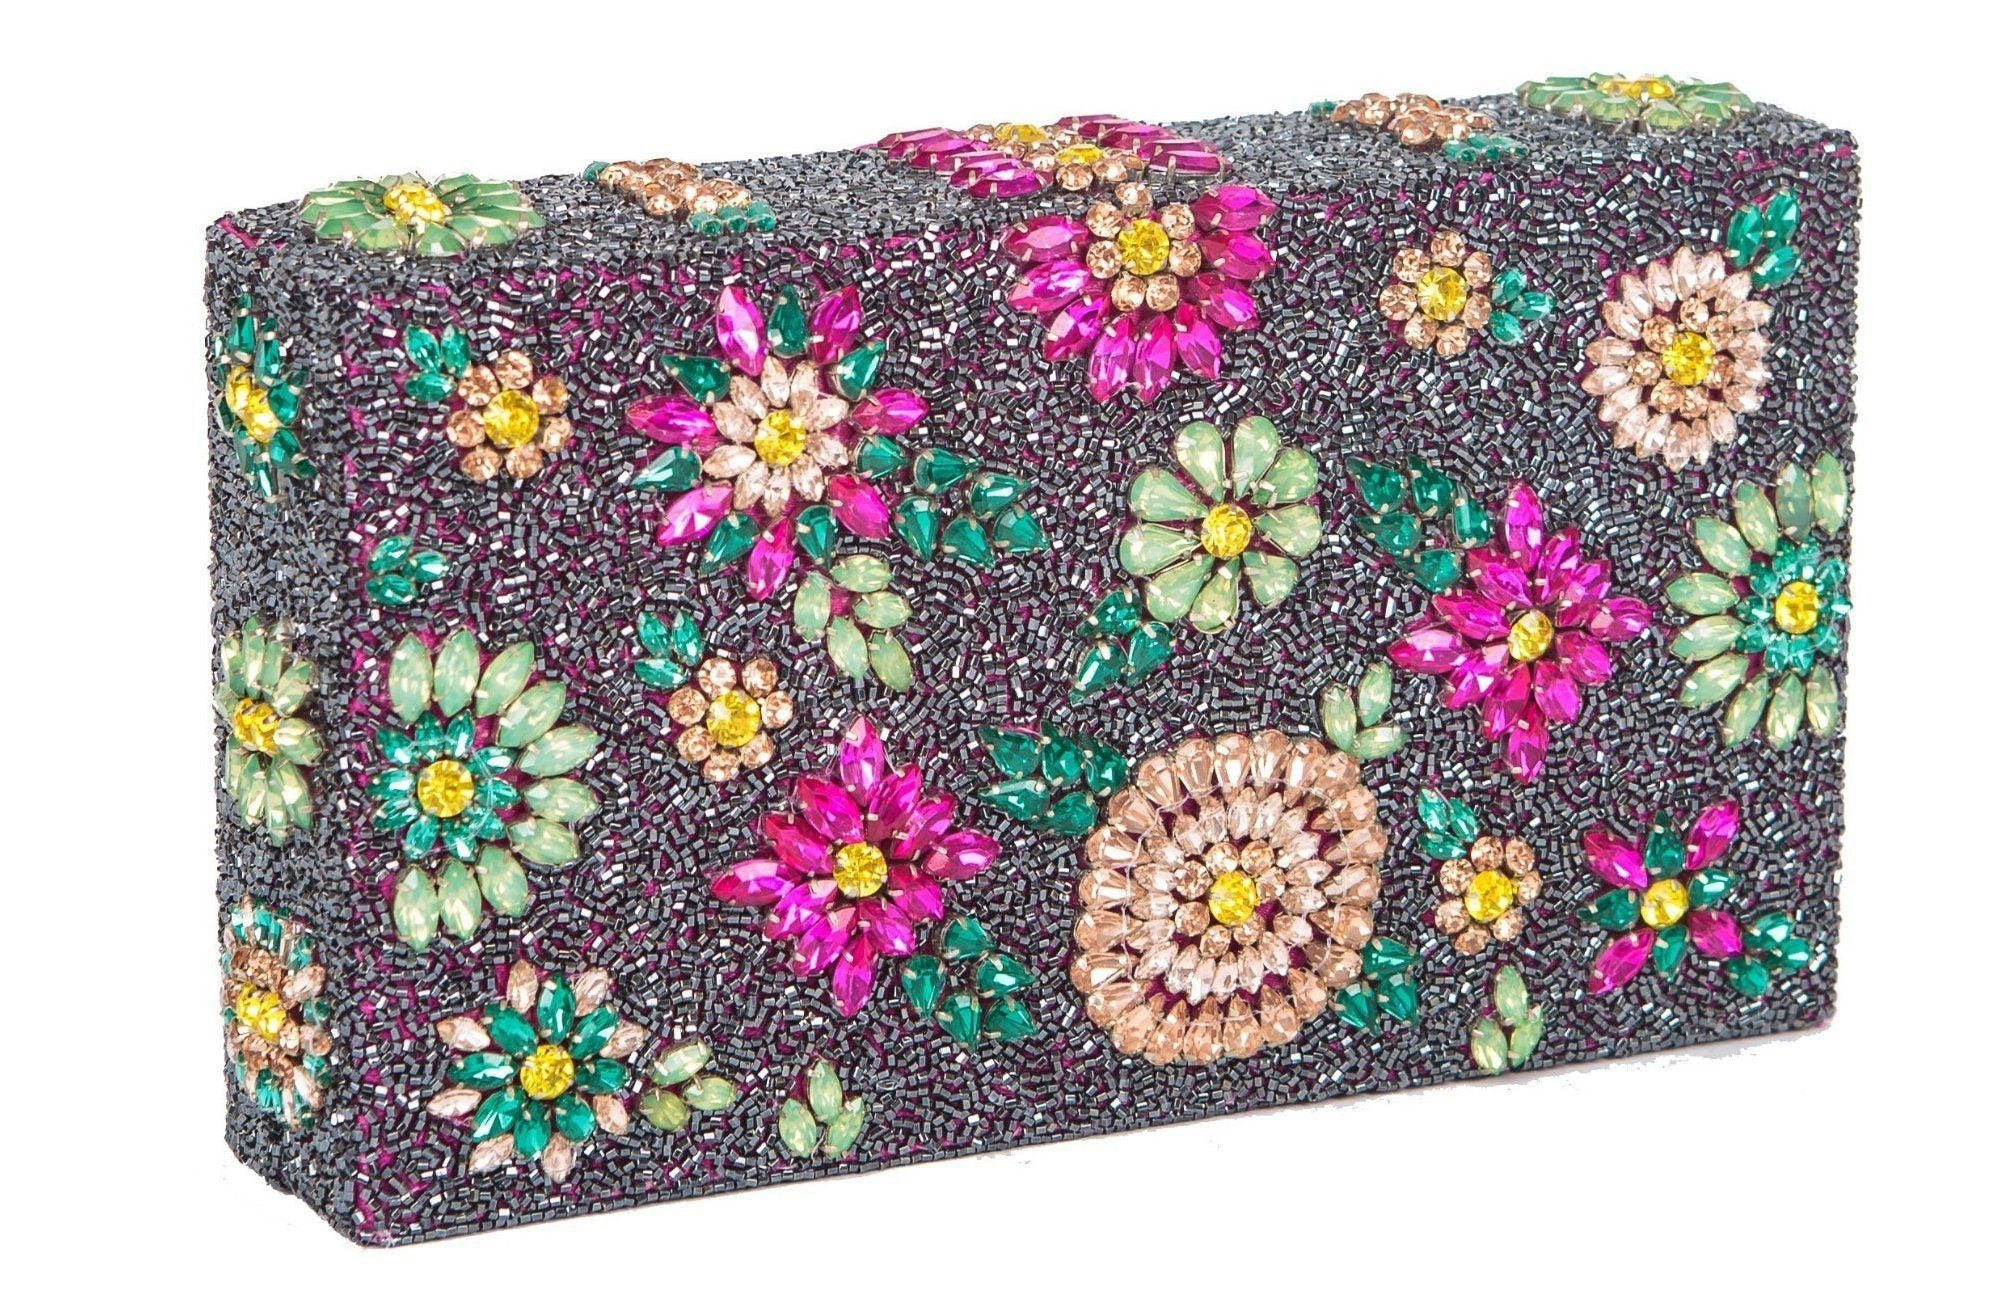 Shooting Star Crystal Encrusted Clutch - Multi Color - Blumera